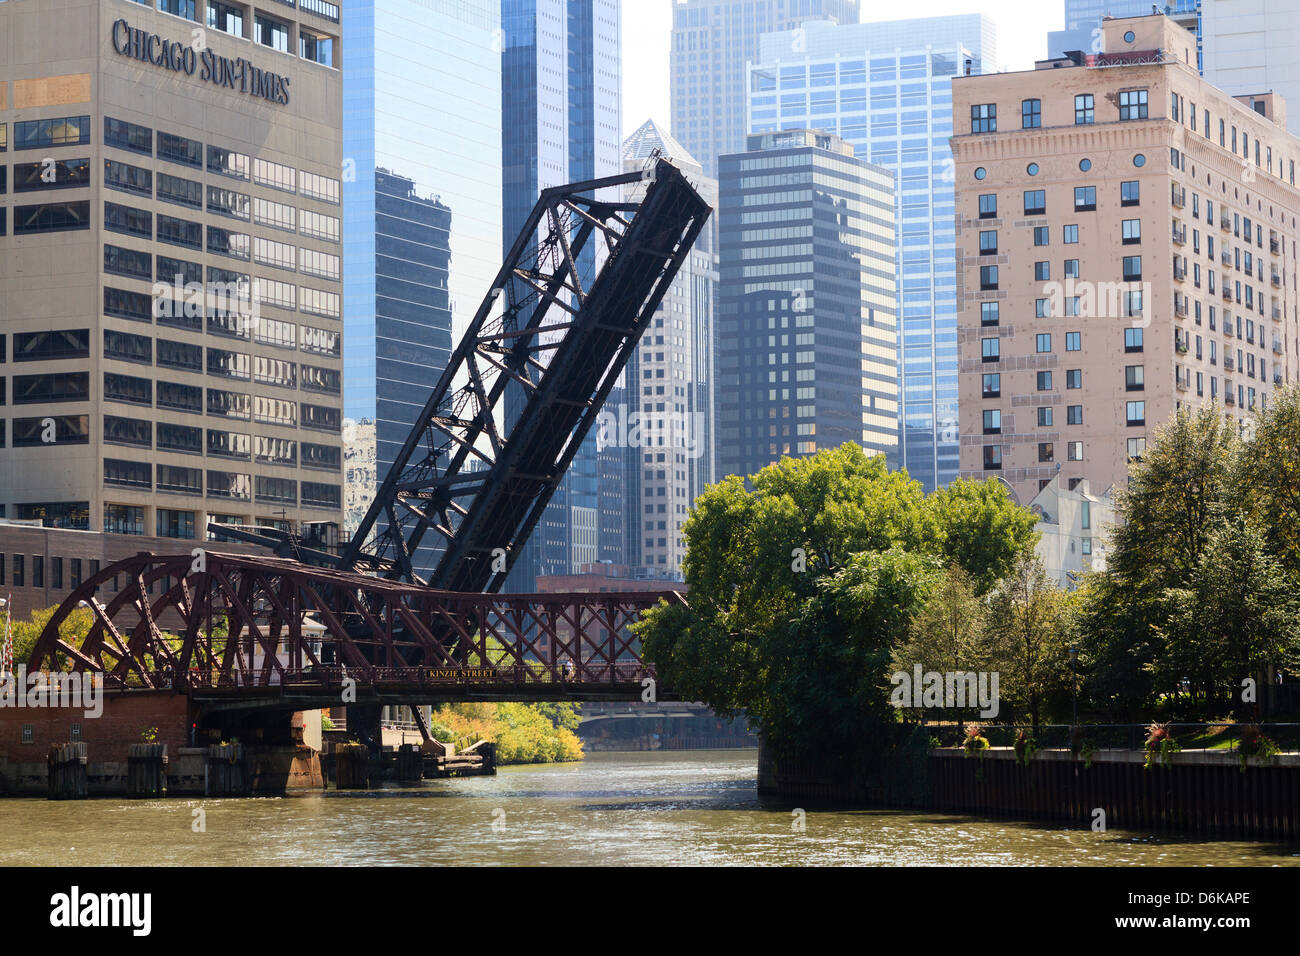 Chicago River scene, Chicago, Illinois, United States of America, North America Stock Photo